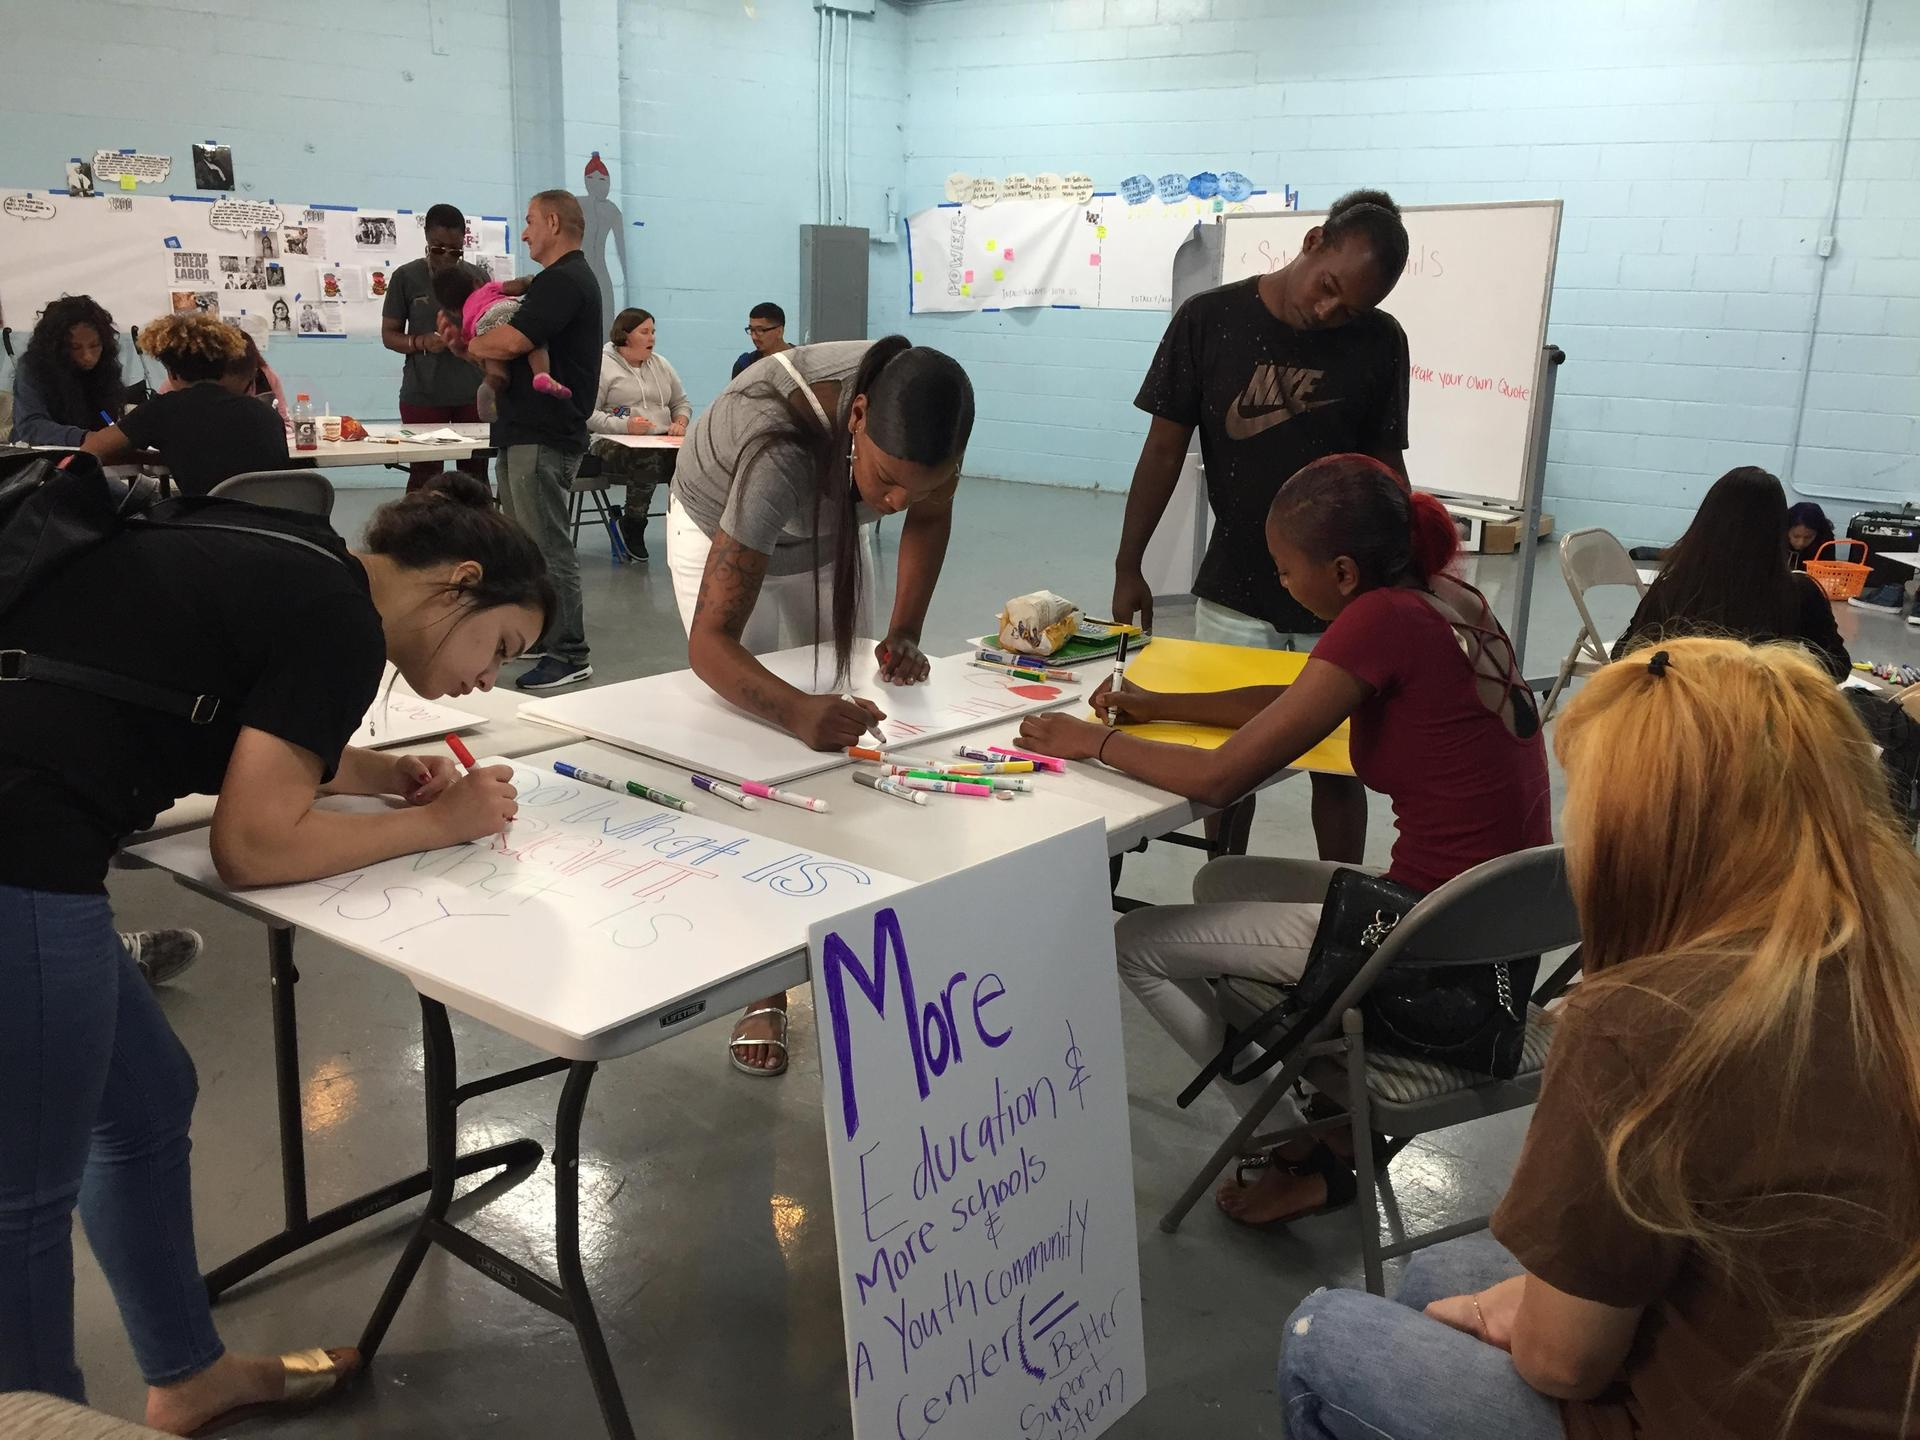 YJC students making signs as part of their Street University